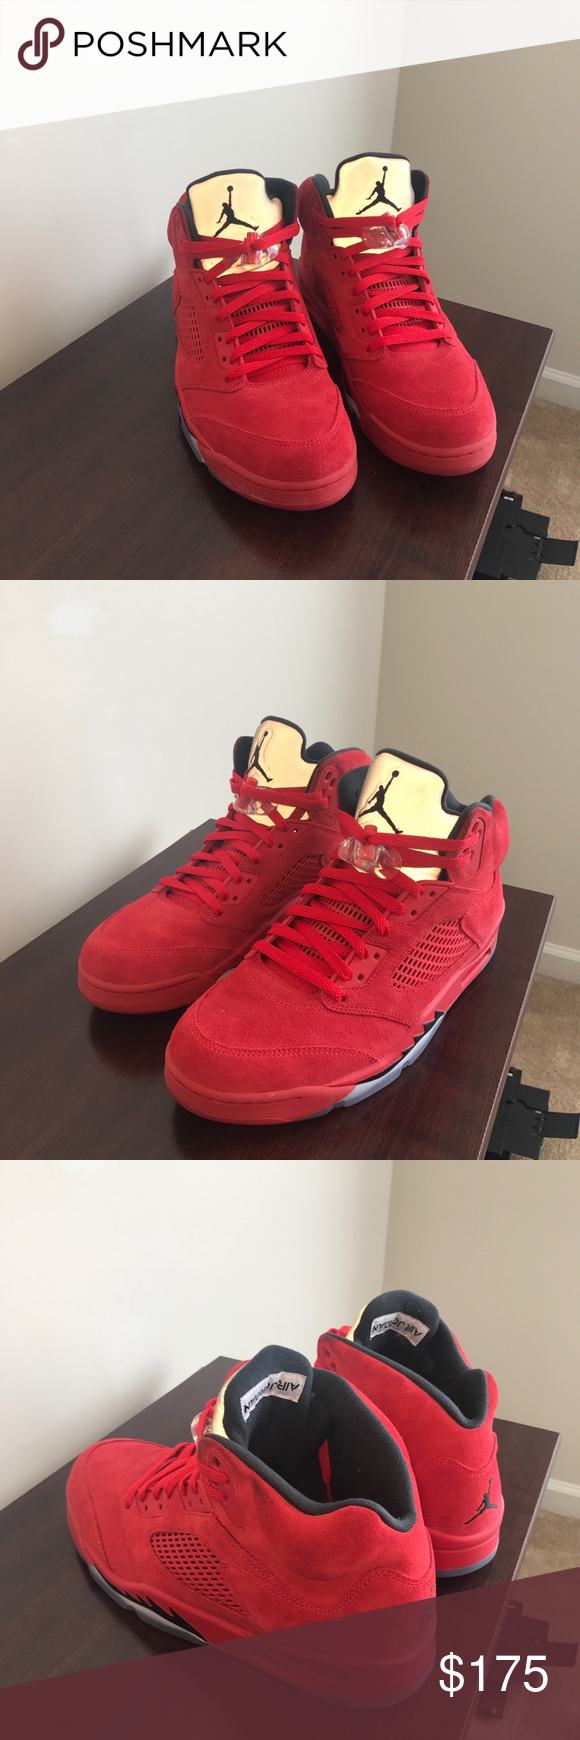 d4fae1a8a017 Jordan 5 red suede Size 11 5 used Air Jordan Shoes Athletic Shoes ...